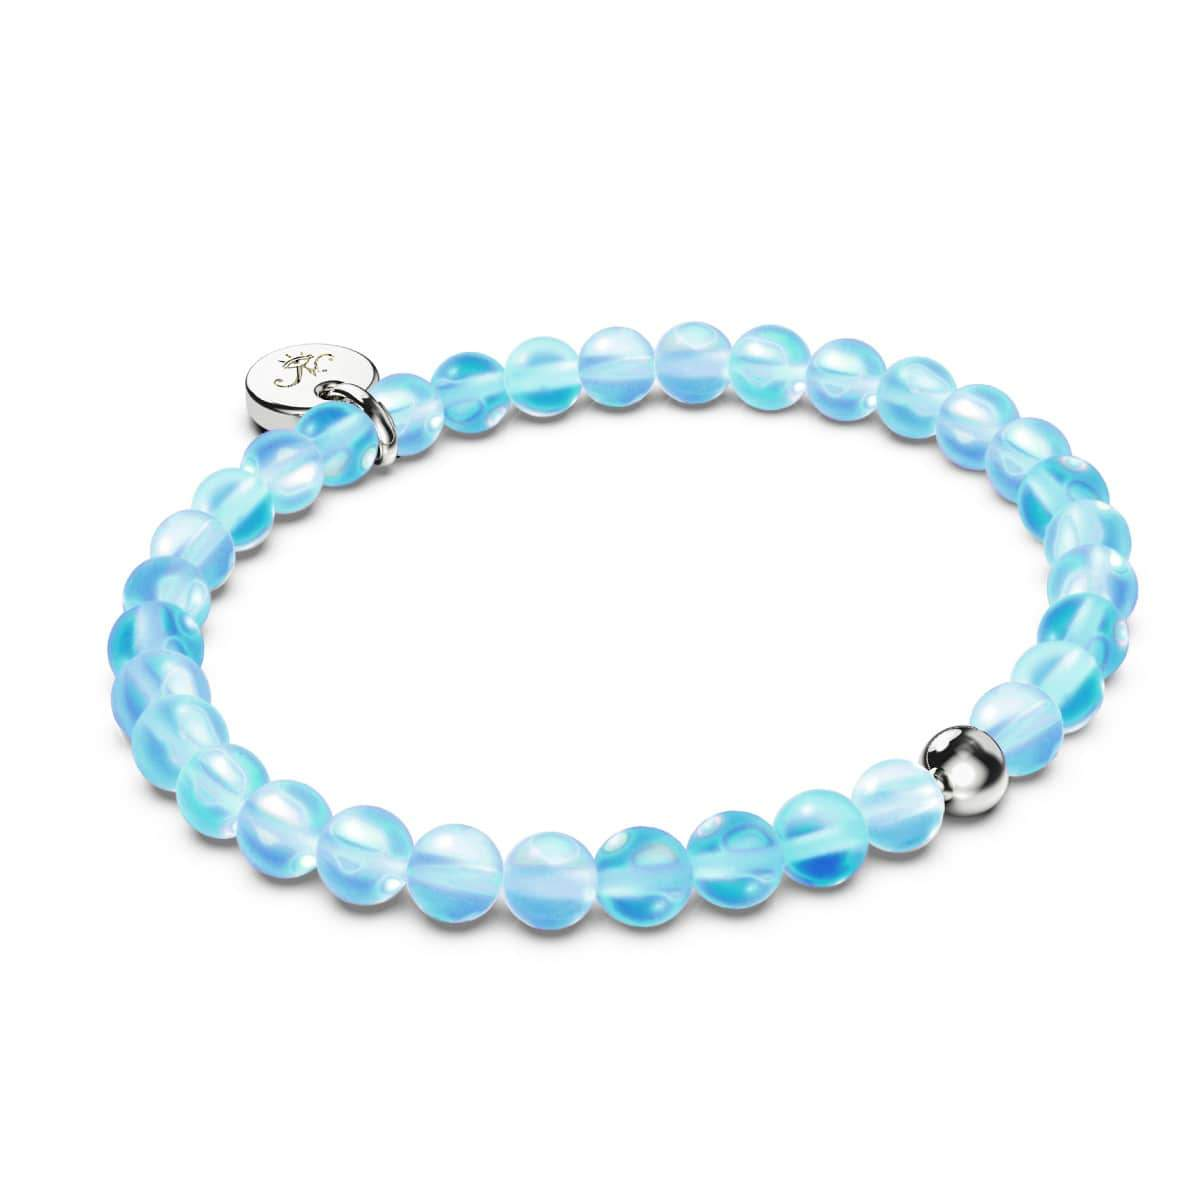 Aquamarine |  .925 Sterling Silver | Mermaid Glass Bead Bracelet